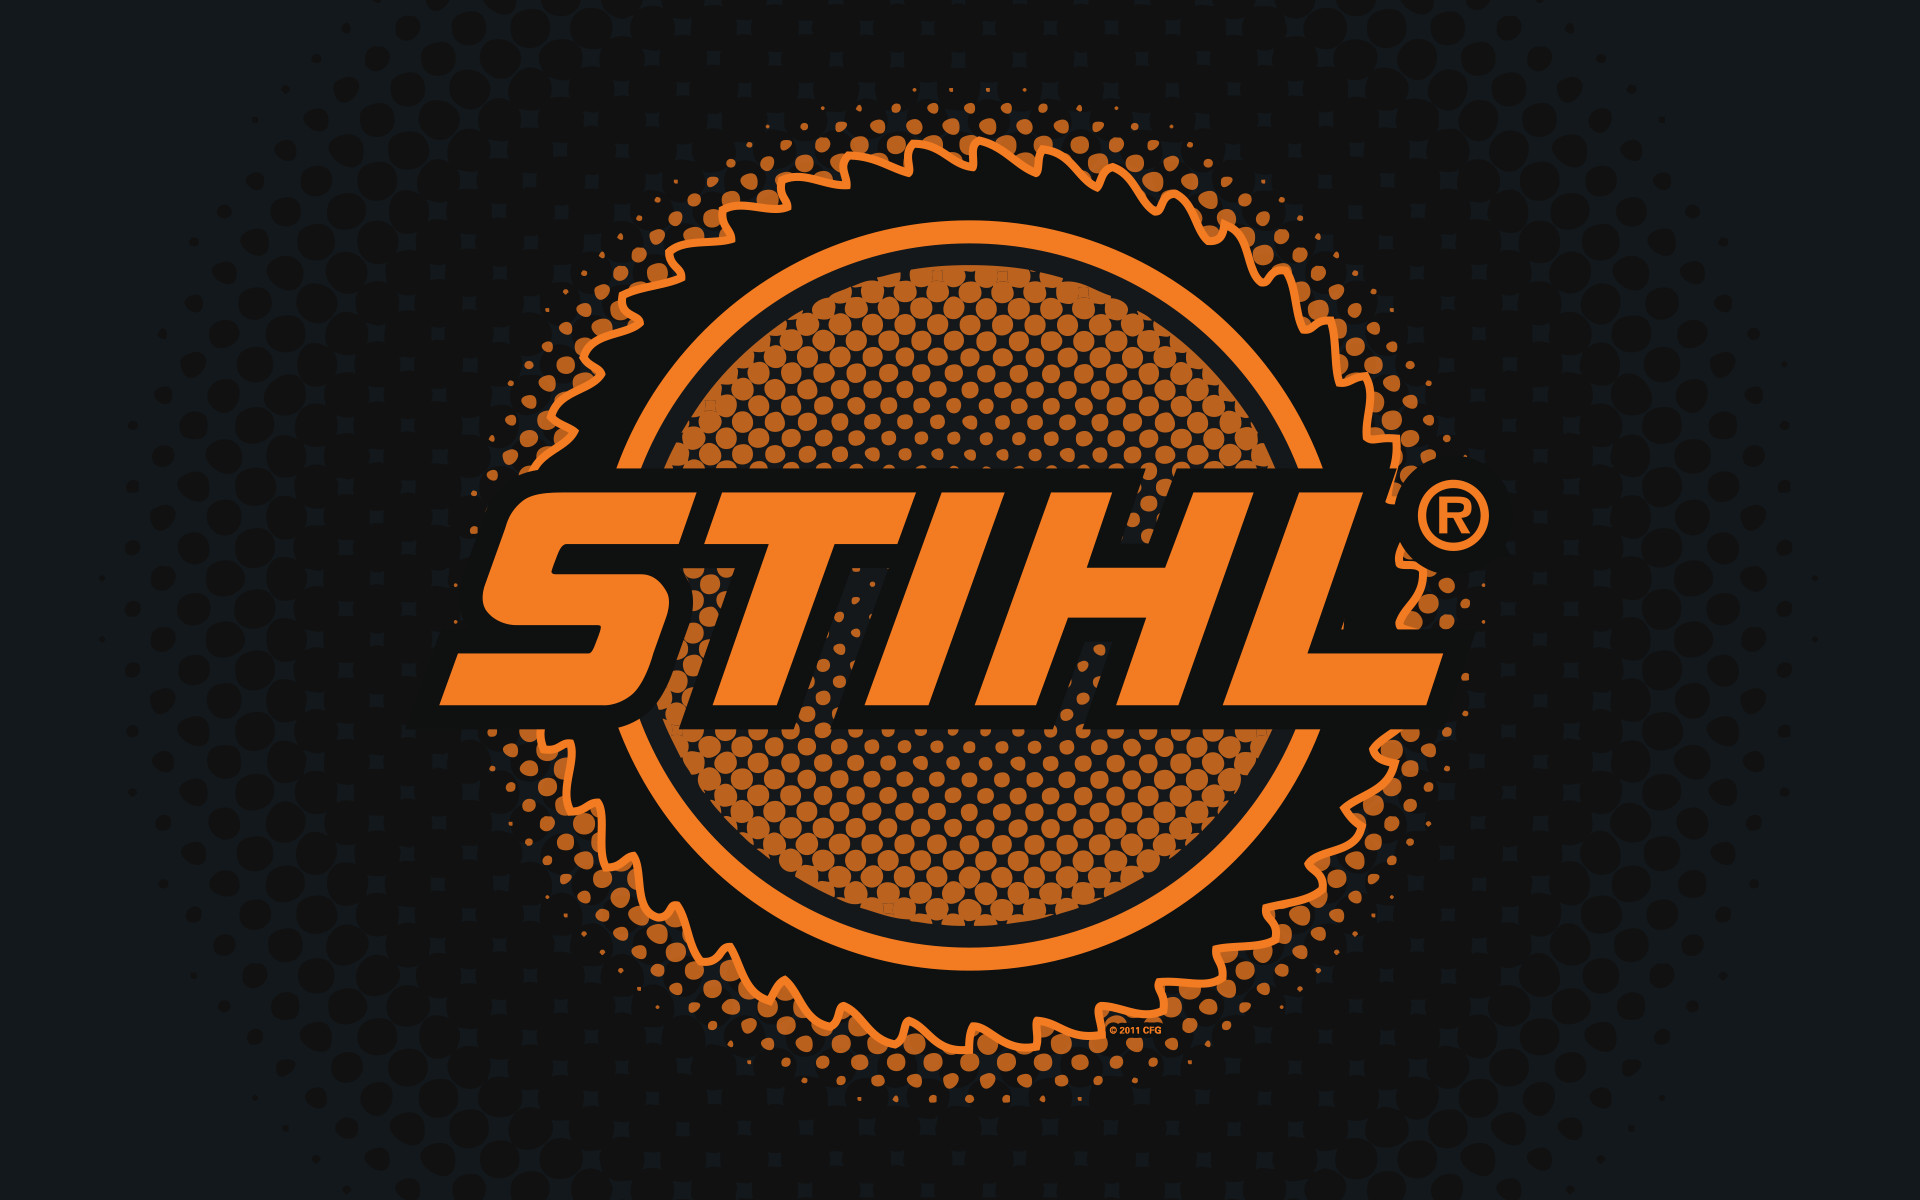 Stihl Downloadable Wallpaper Images   Circle Wallpaper 1920x1200